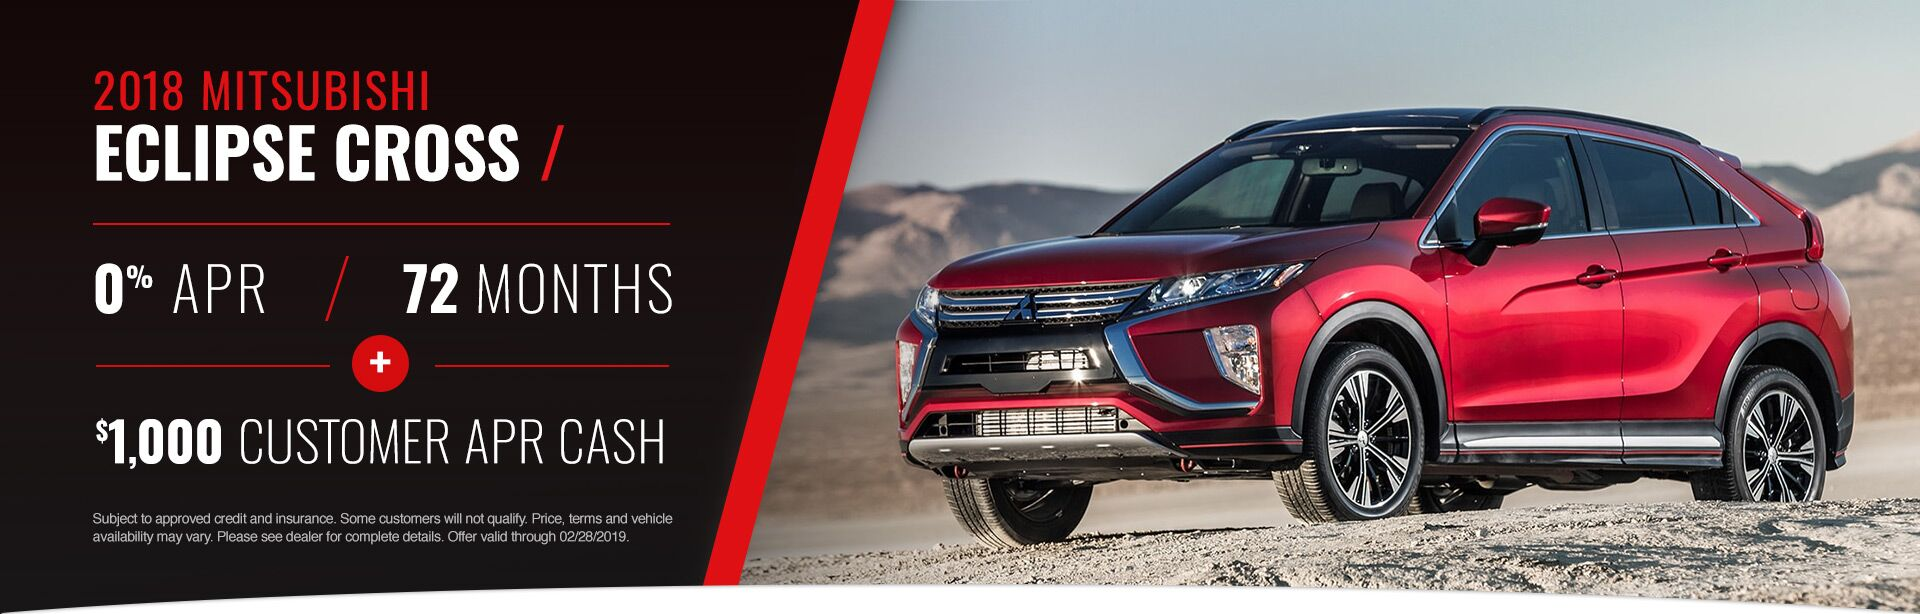 2019 February Eclipse Cross Offer